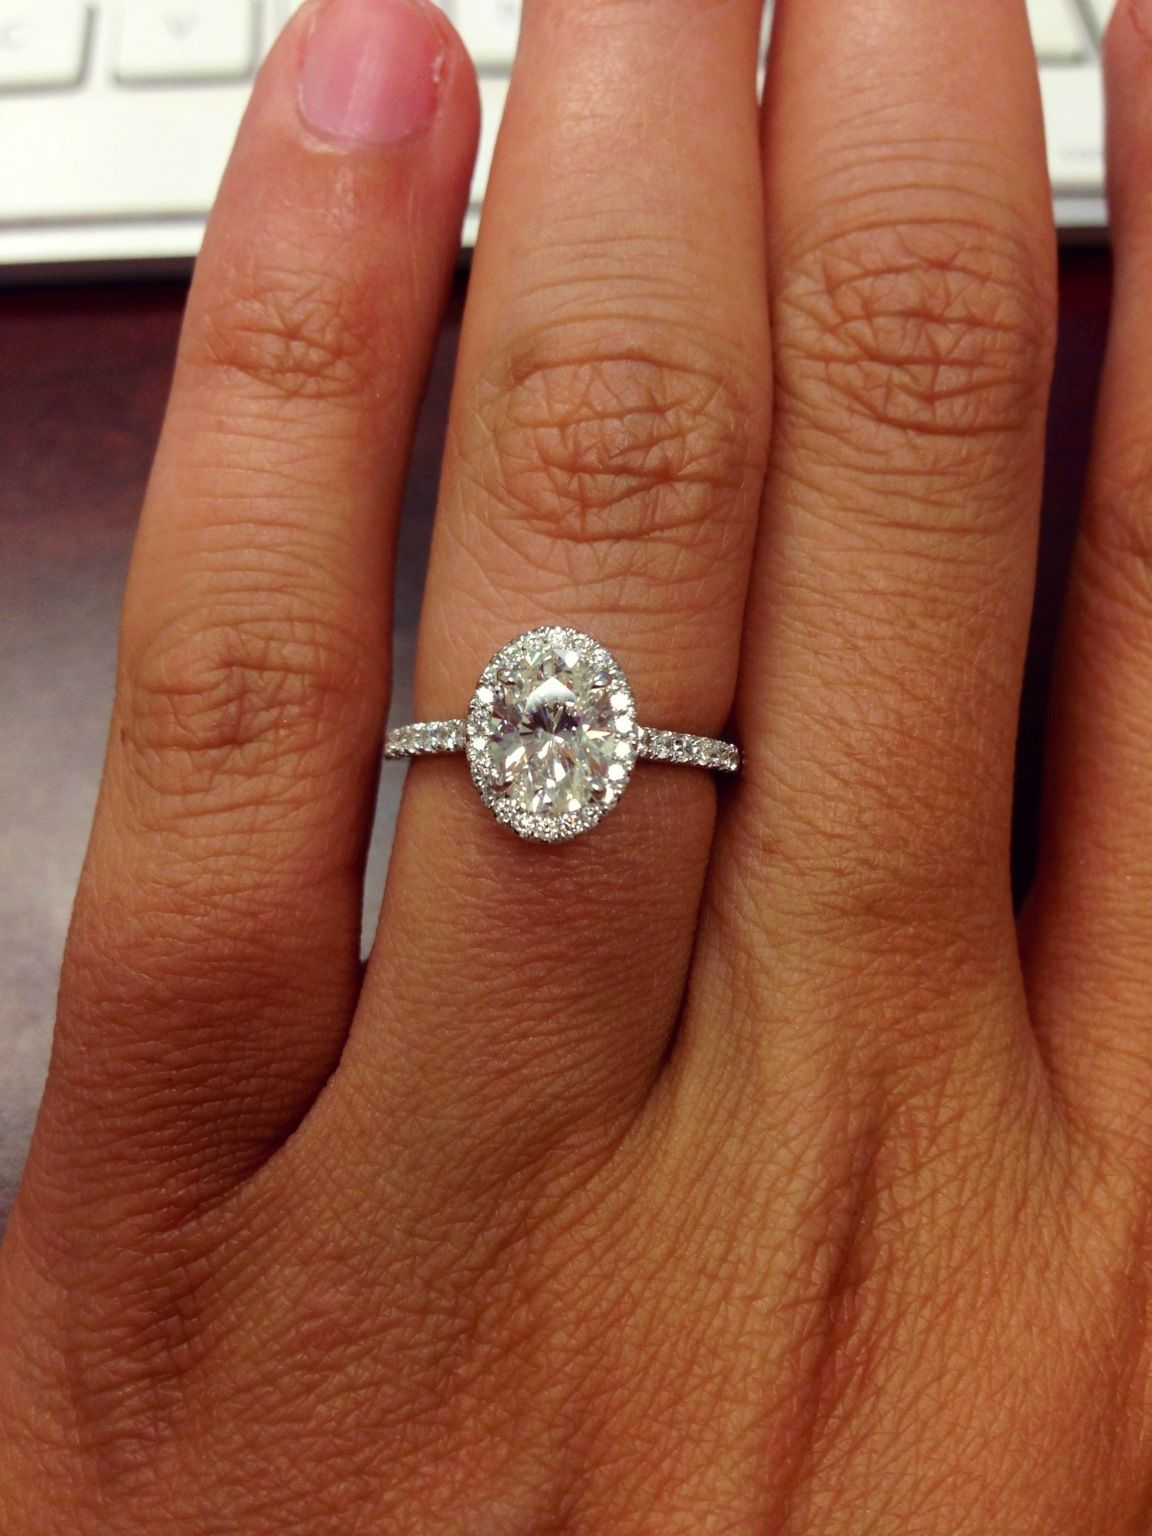 Never even considered an oval diamond but this is absolutely gorgeous I ca